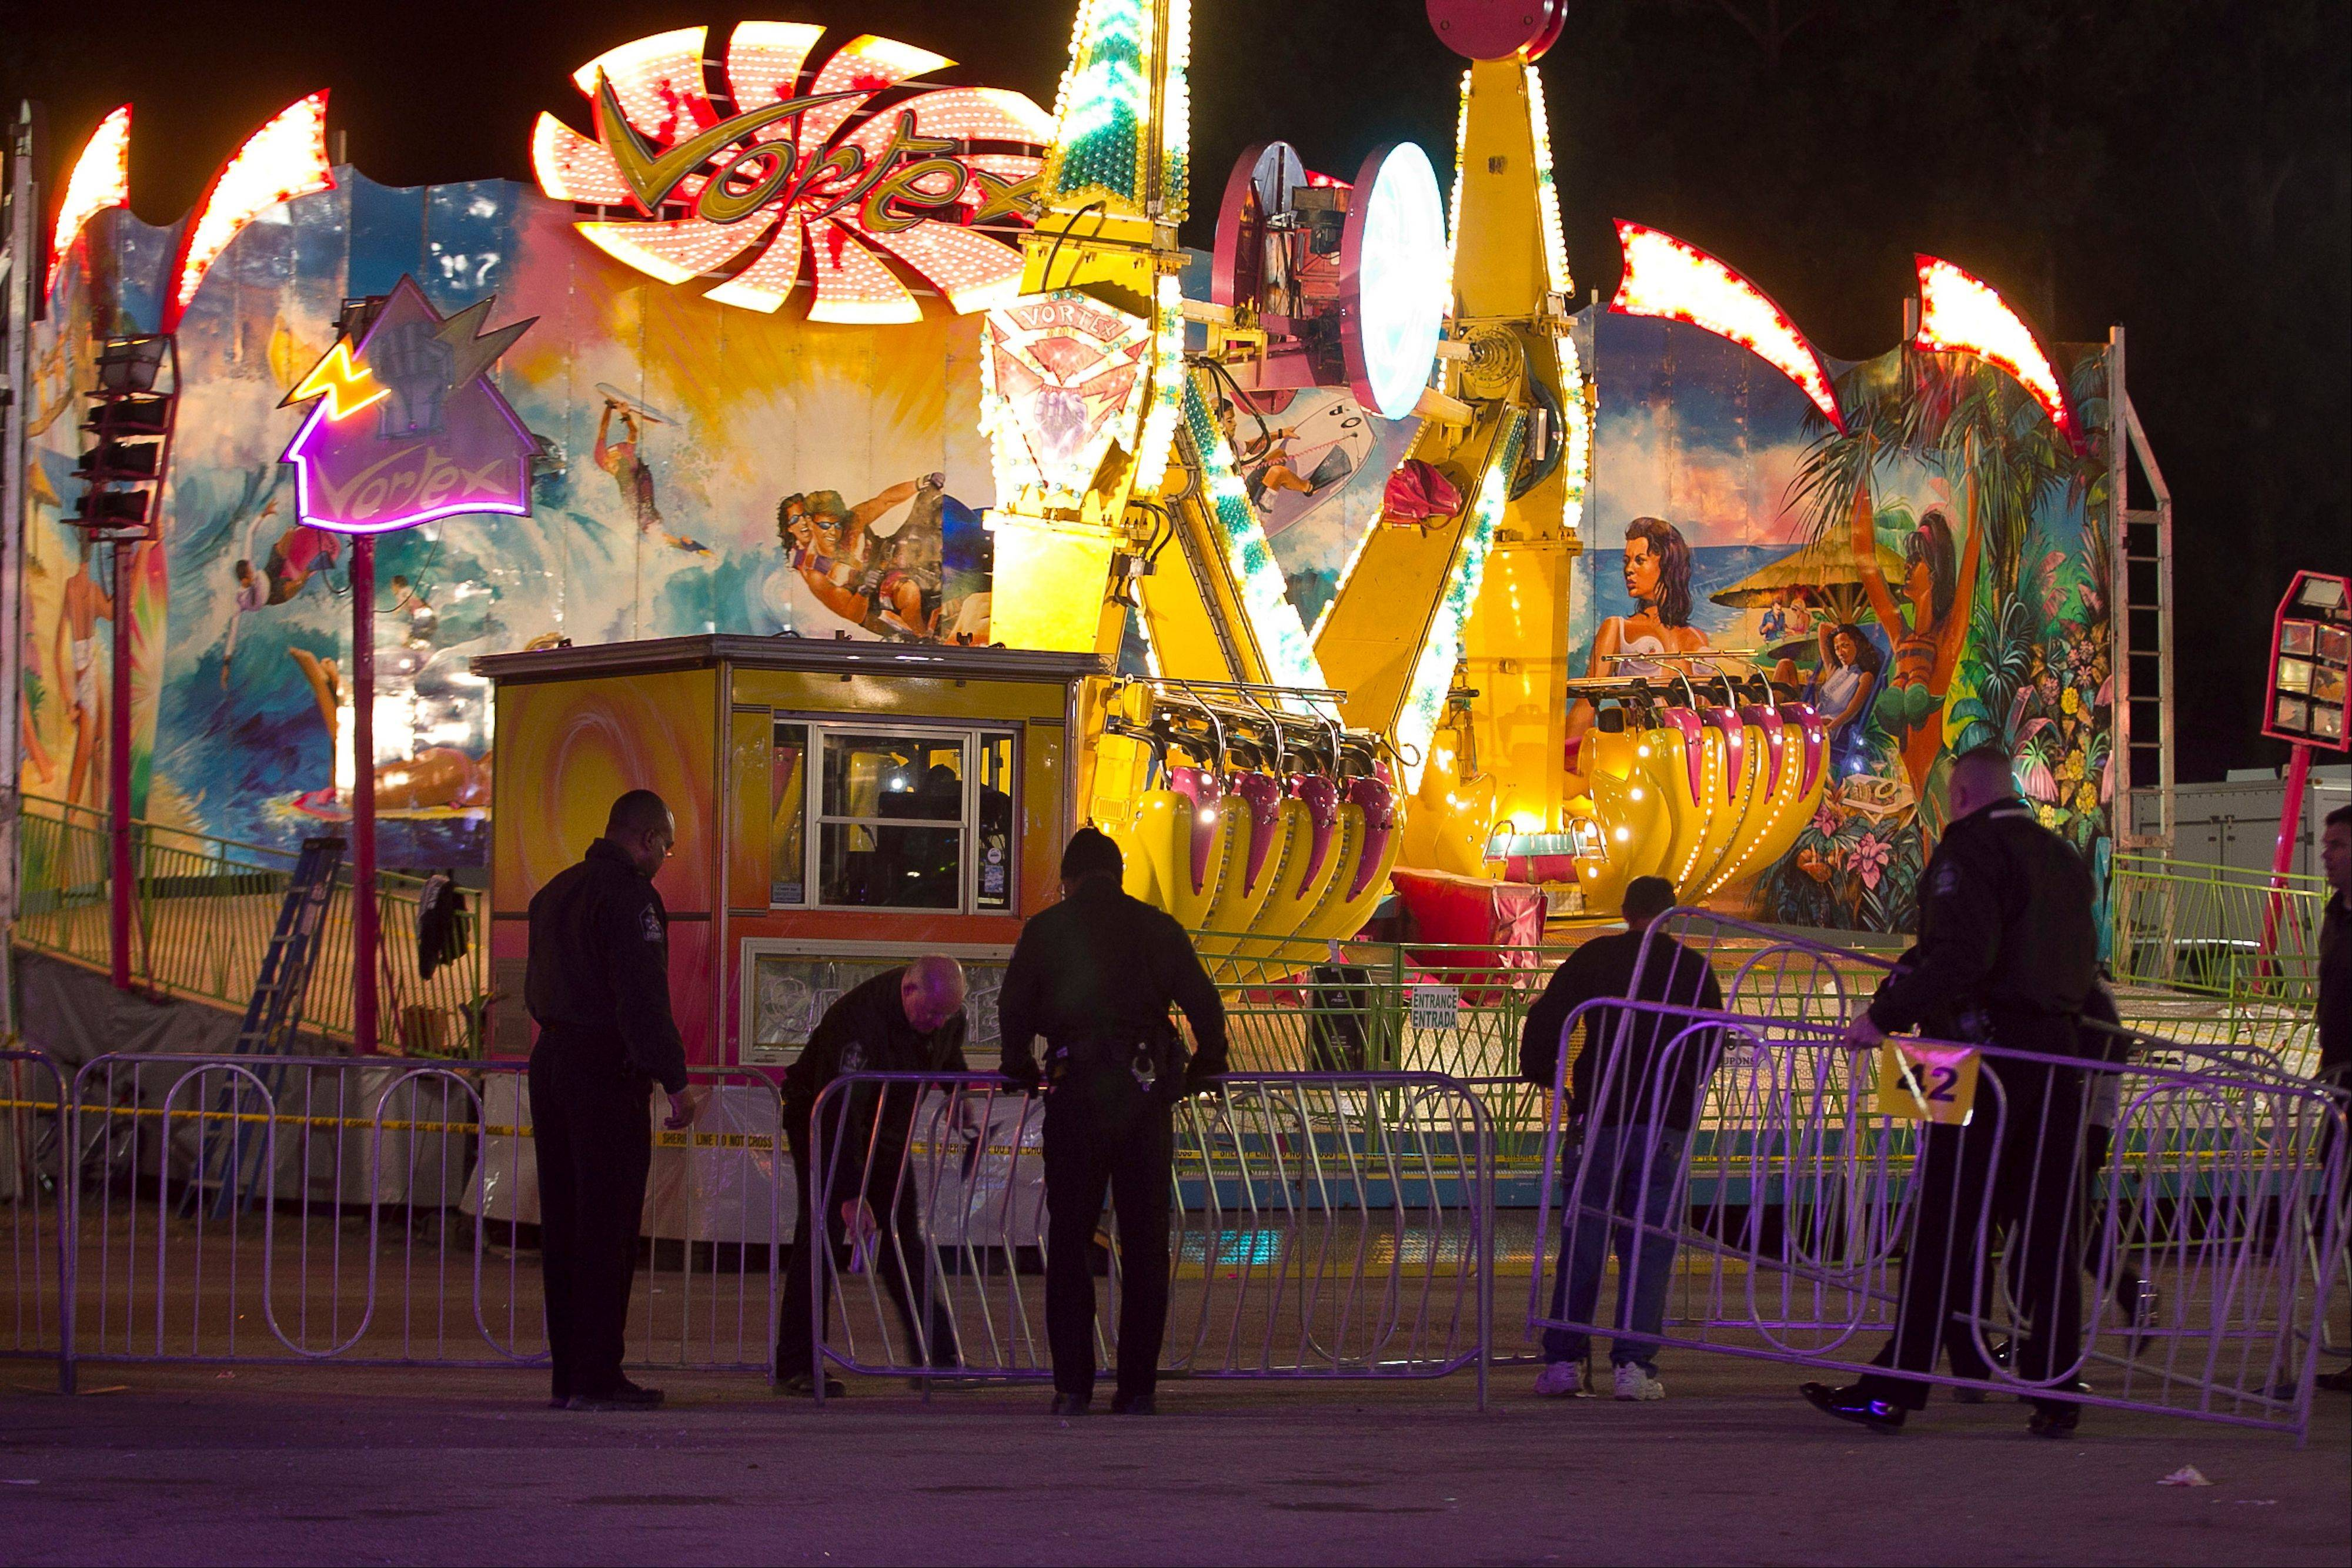 Fairgrounds Police secure a barricade around the Vortex after an accident closed the ride just after 9 p.m. on Thursday at the N.C. State Fair in Raleigh, N.C.